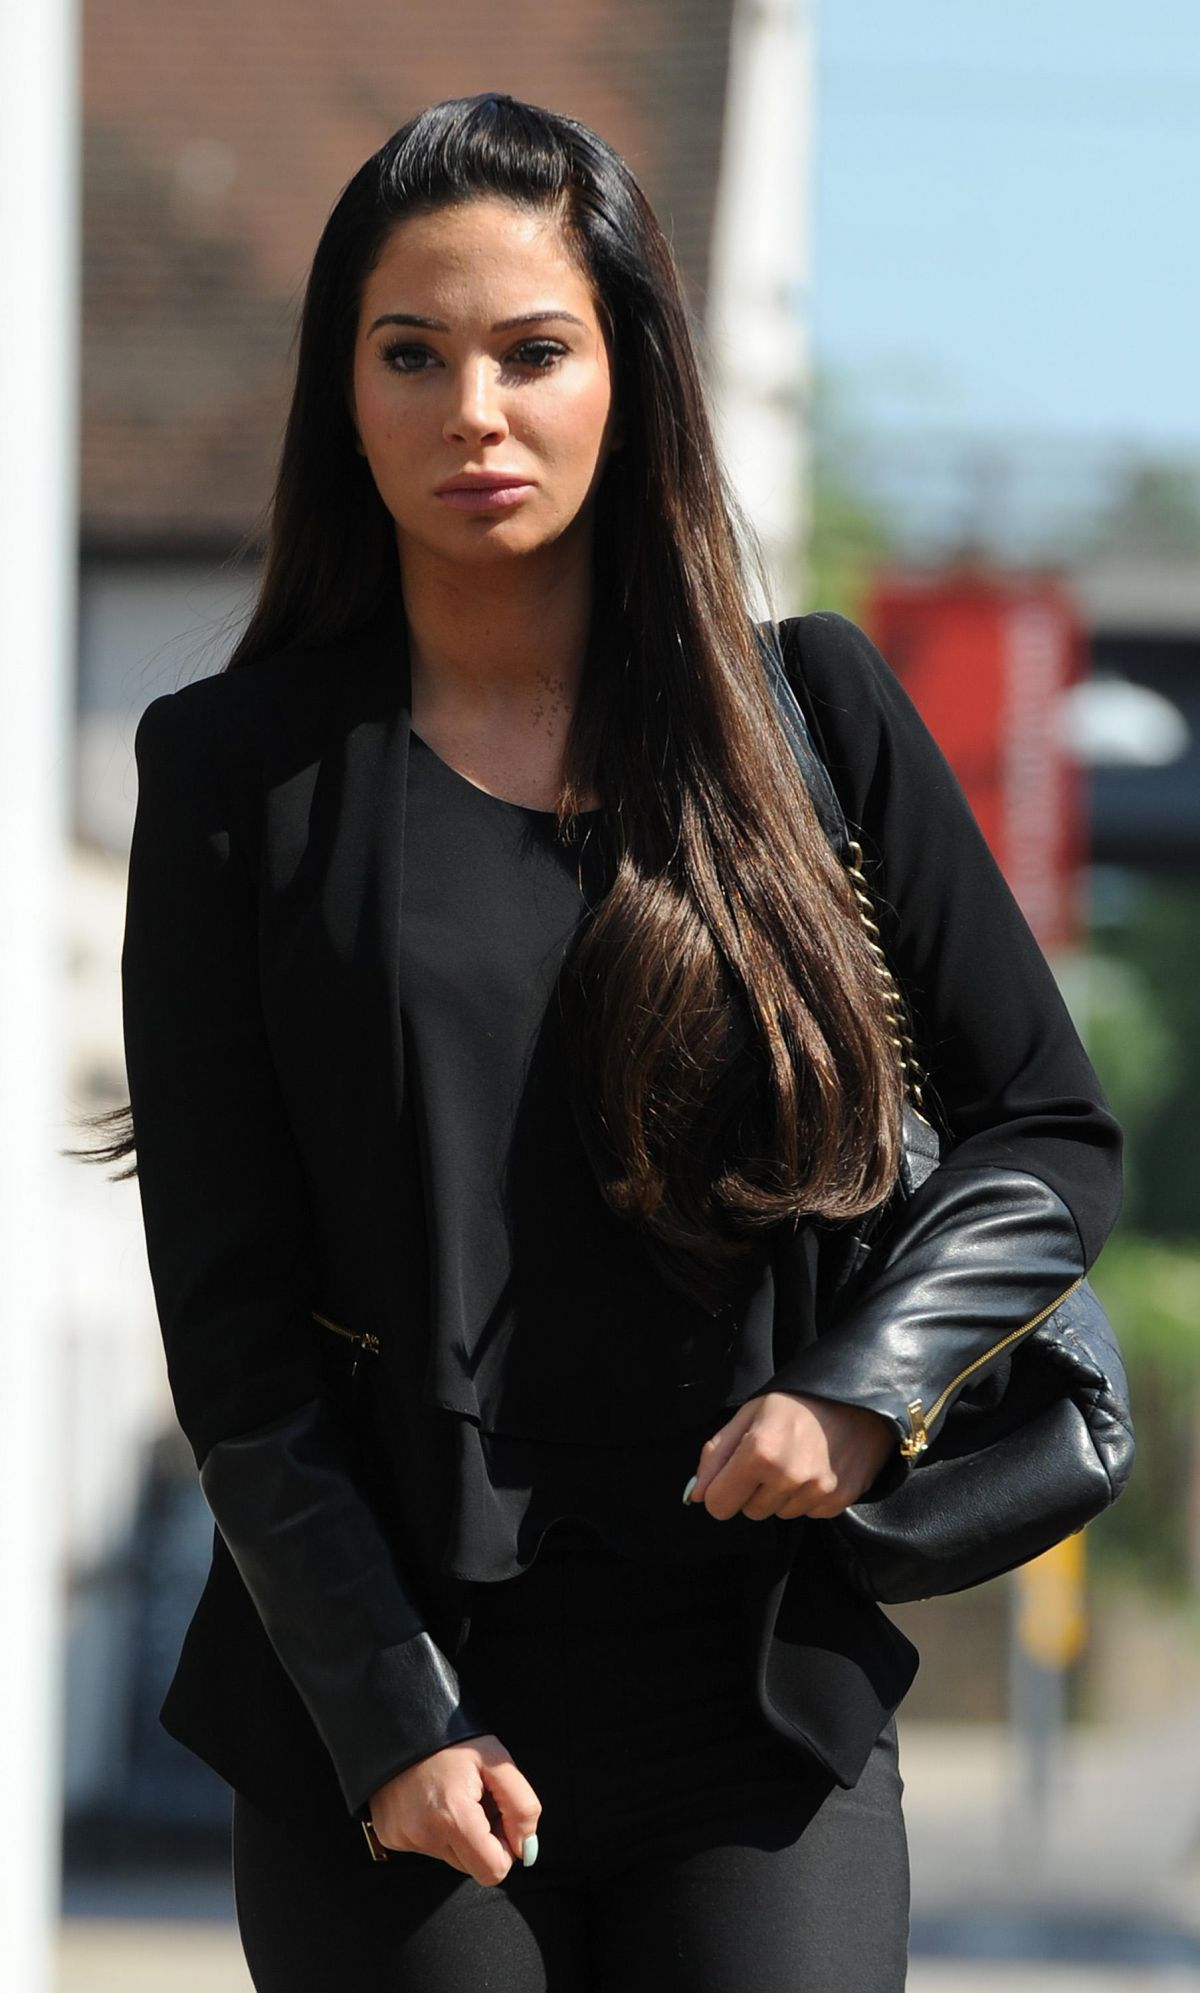 TULISA CONTOSTAVLOS Arrives at Chelmsford Magistrates Court